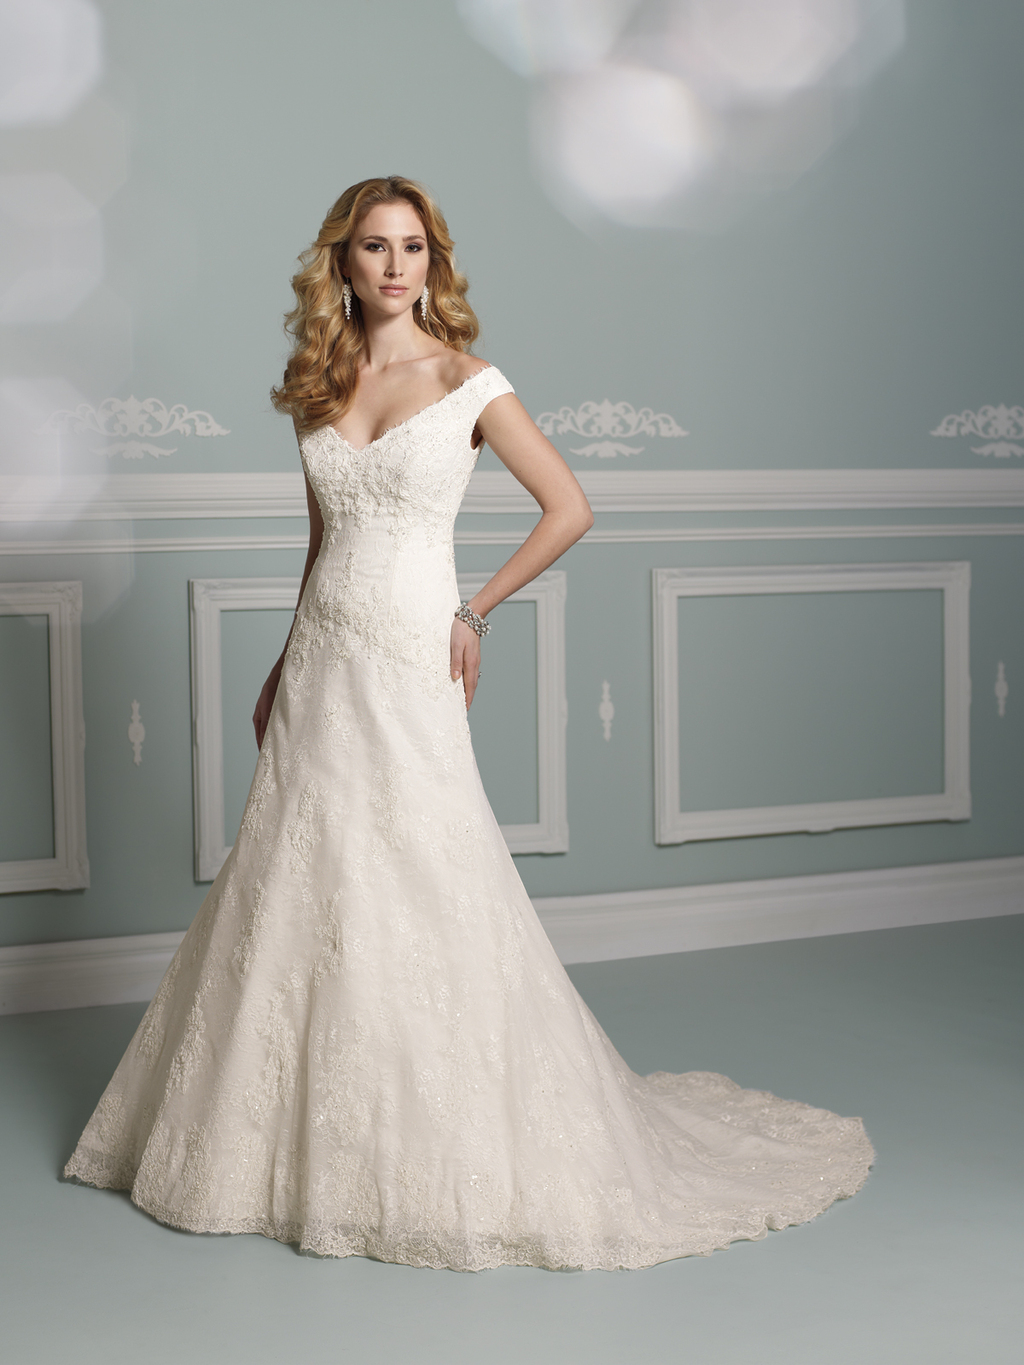 Wedding-dress-james-clifford-collection-mon-cheri-fall-2012-bridal-gown-j21267.full